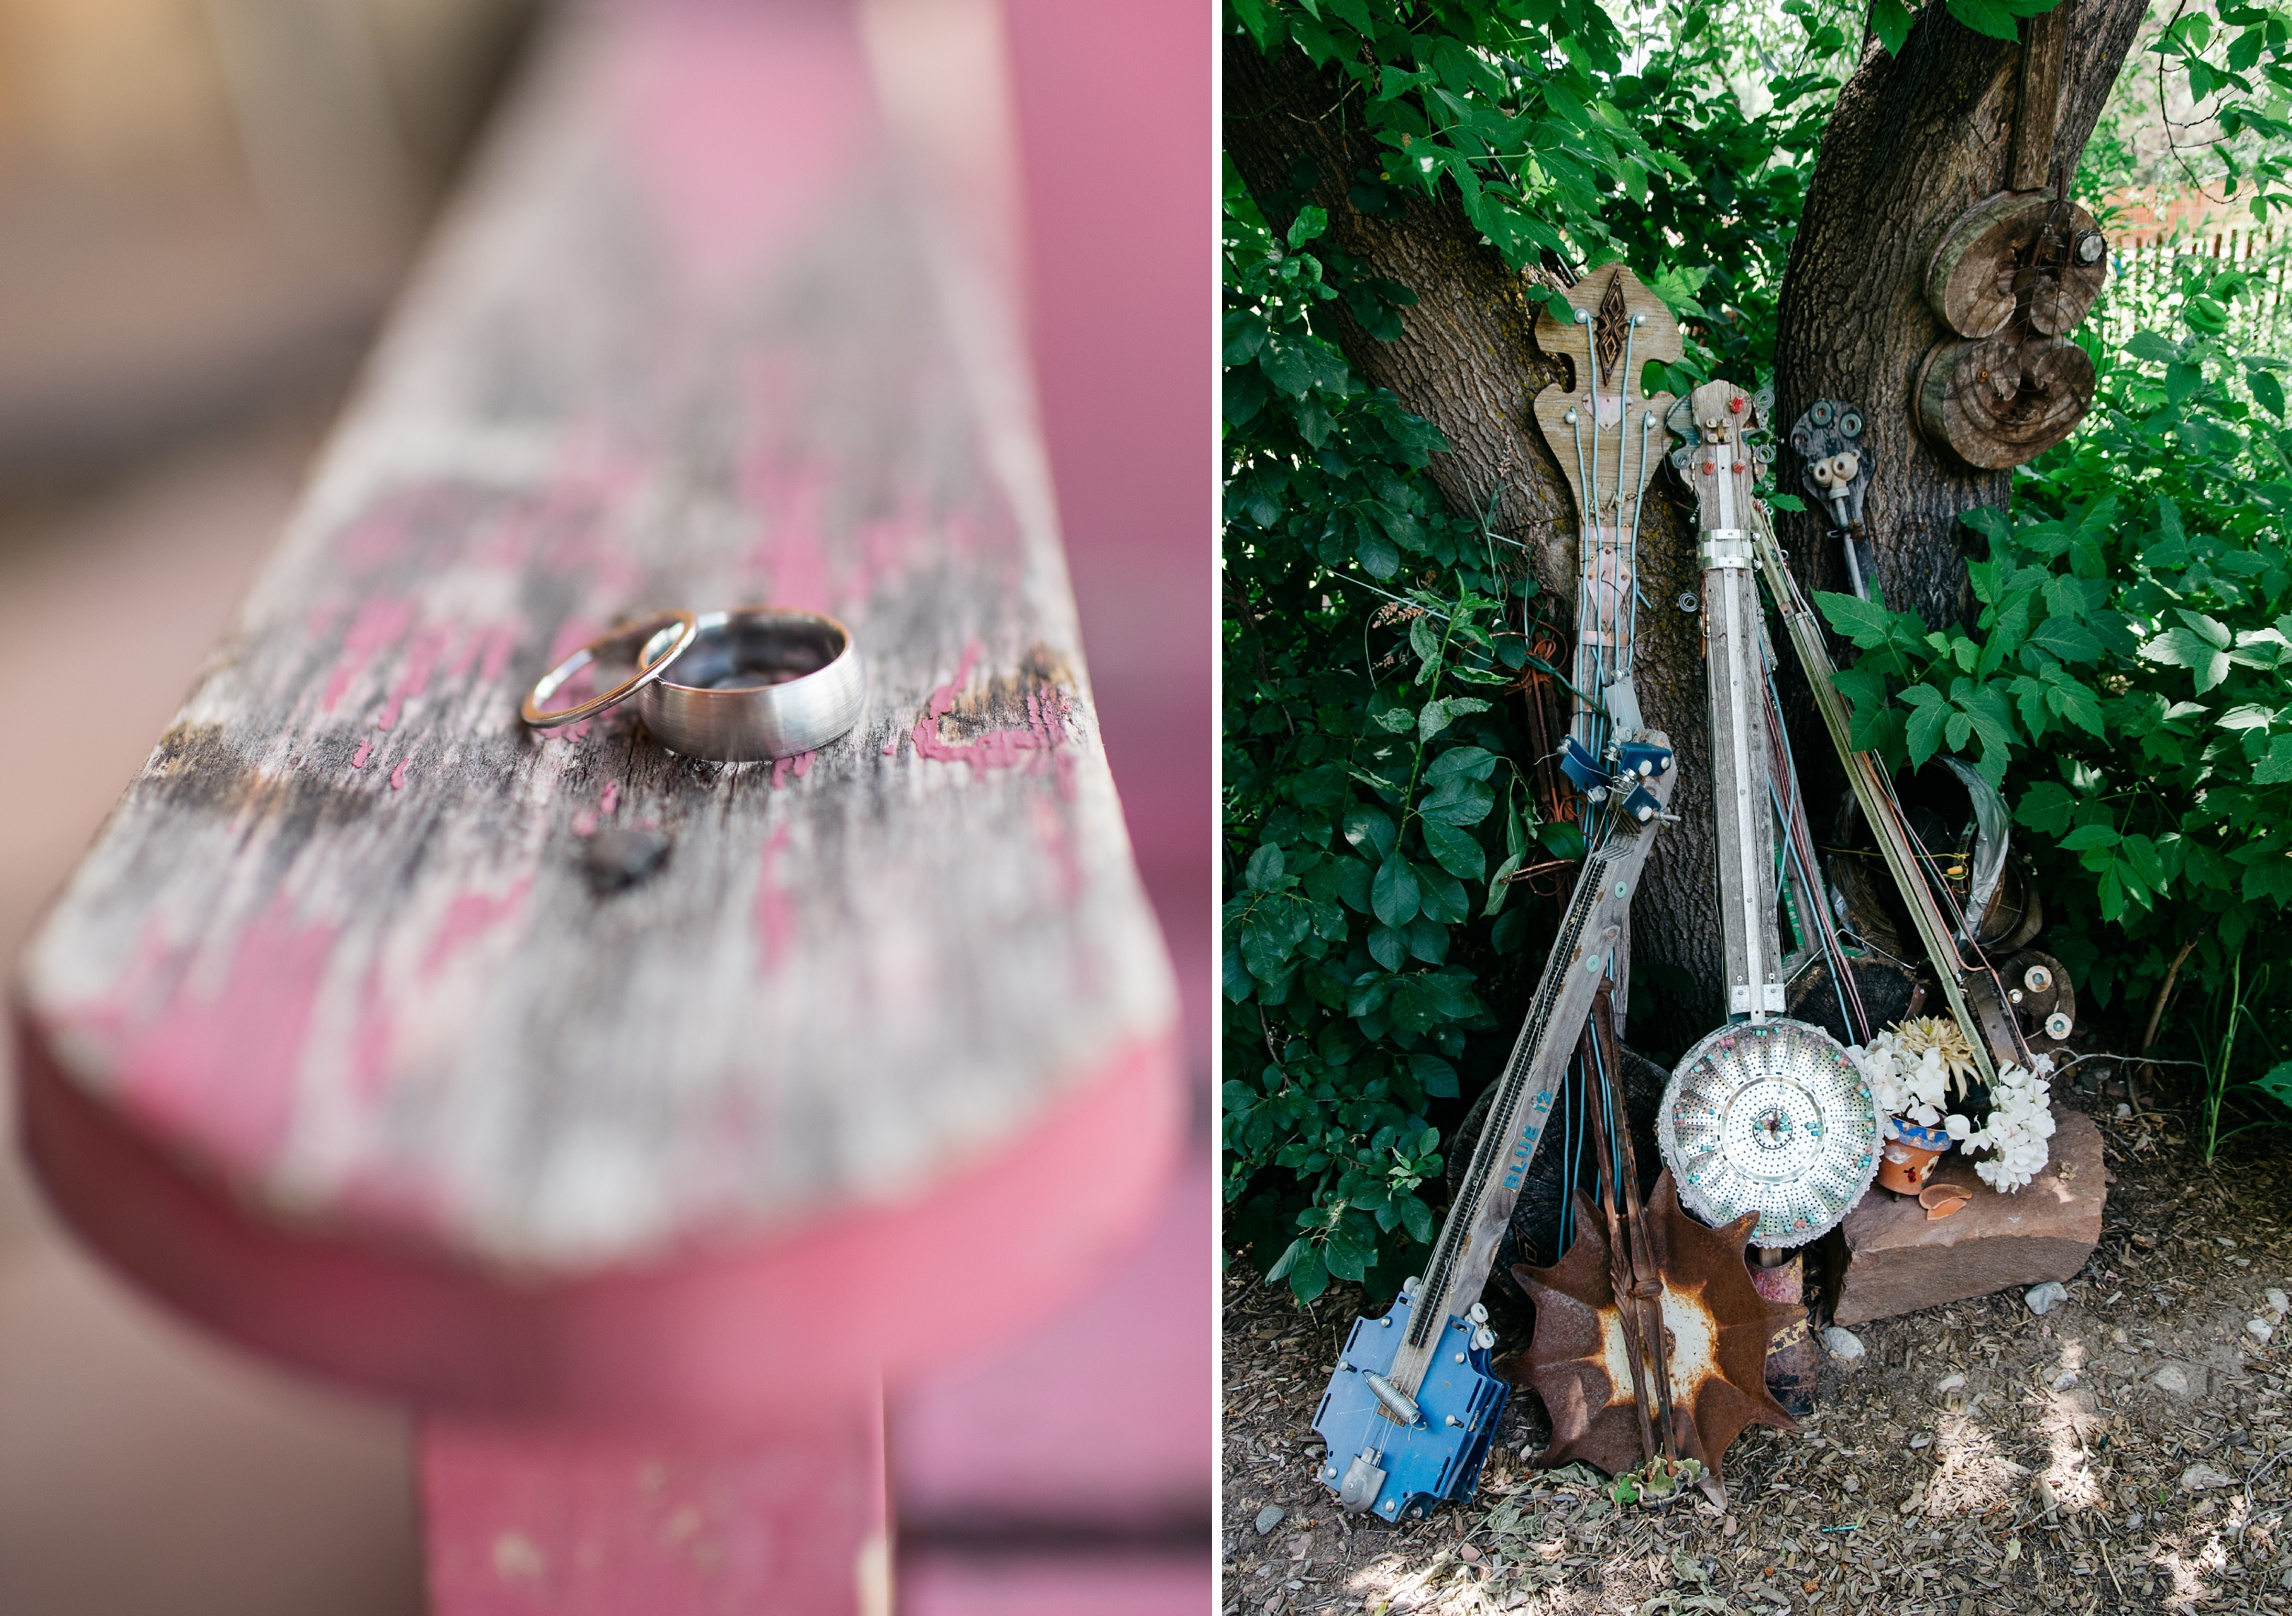 The rings and banjo yard art at Planet Bluegrass in Lyons, Colorado. Wedding photography by Sonja and Max Salzburg of Sonja K Photography.